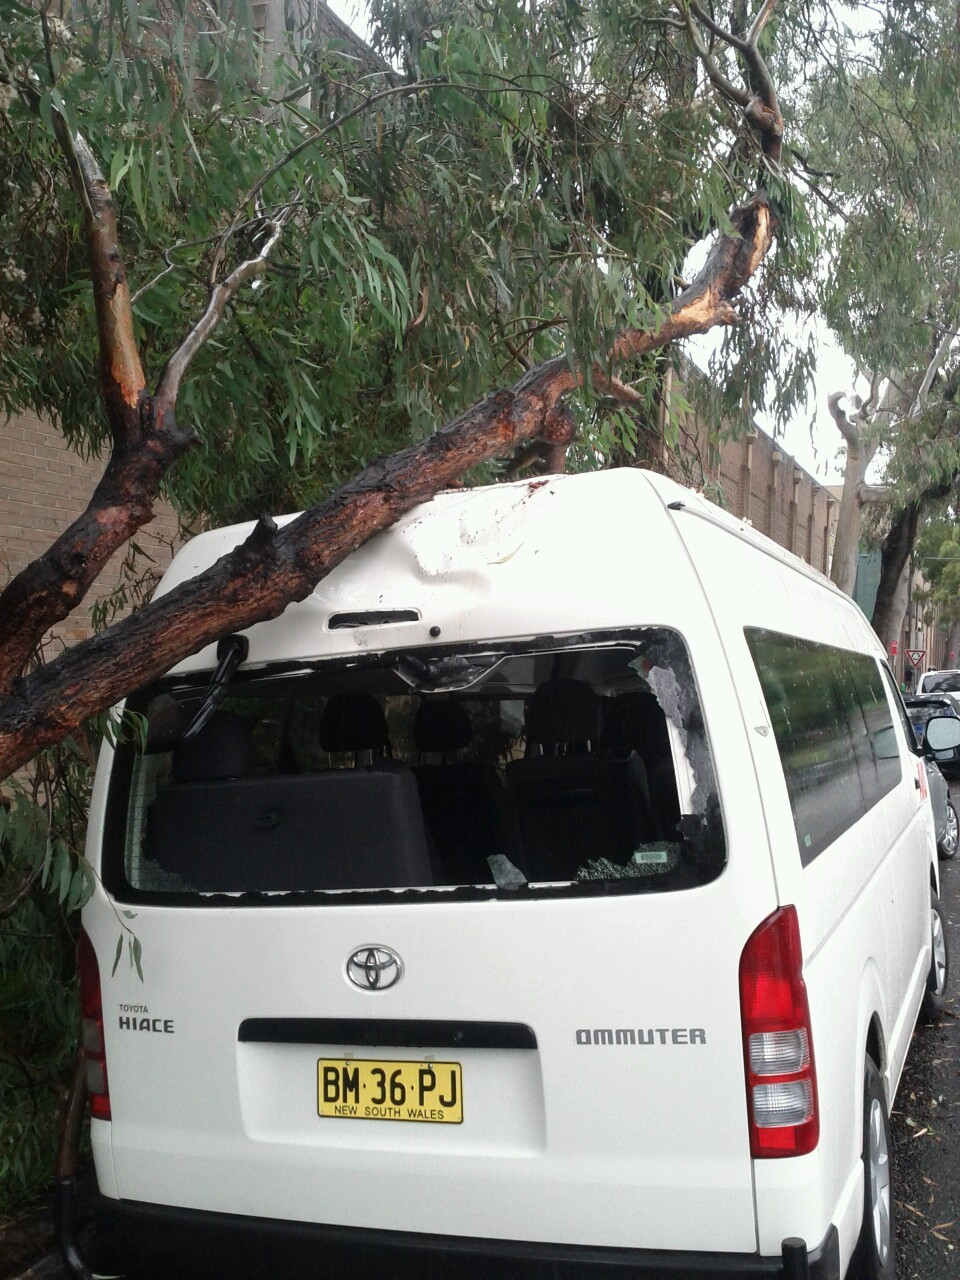 Car Killed by tree. Tree killed by truck.